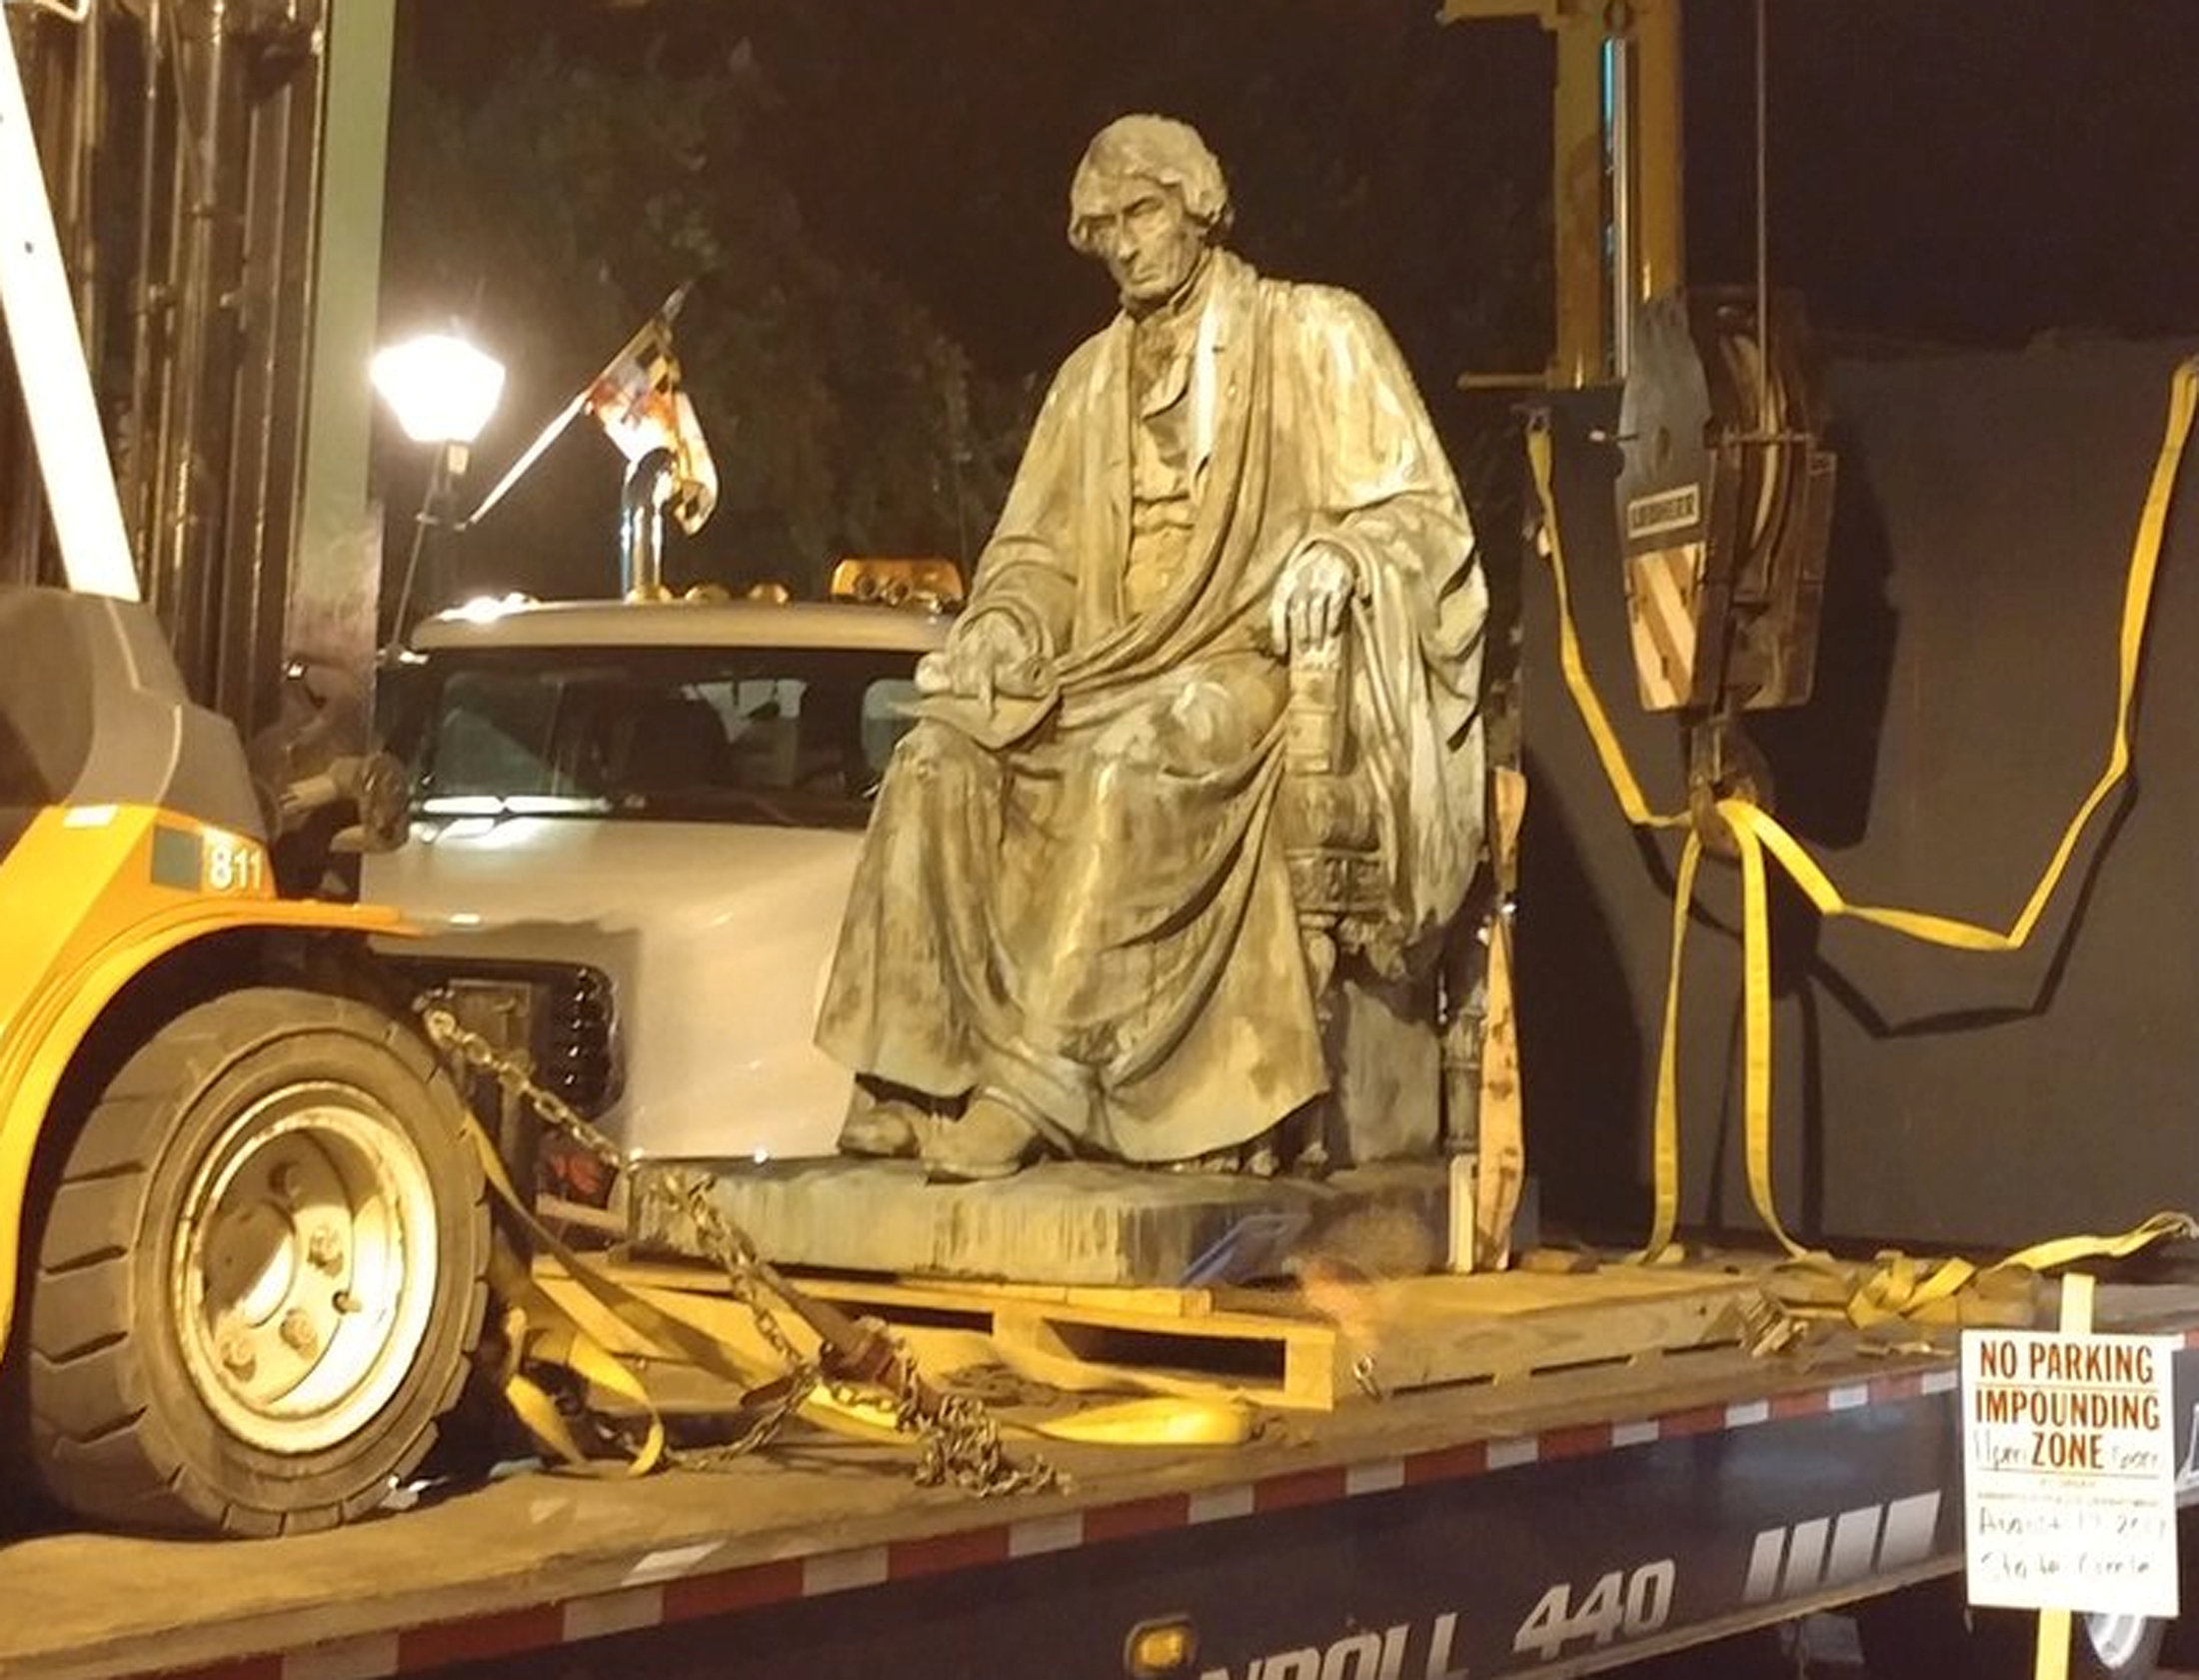 The statue of former Supreme Court Chief Justice Roger B. Taney is seen on a flatbed trailer after it was removed from outside the Maryland State House in Annapolis, Maryland, U.S. early August 18, 2017 in this image obtained from social media. Courtesy @BeeprB/Handout via REUTERS